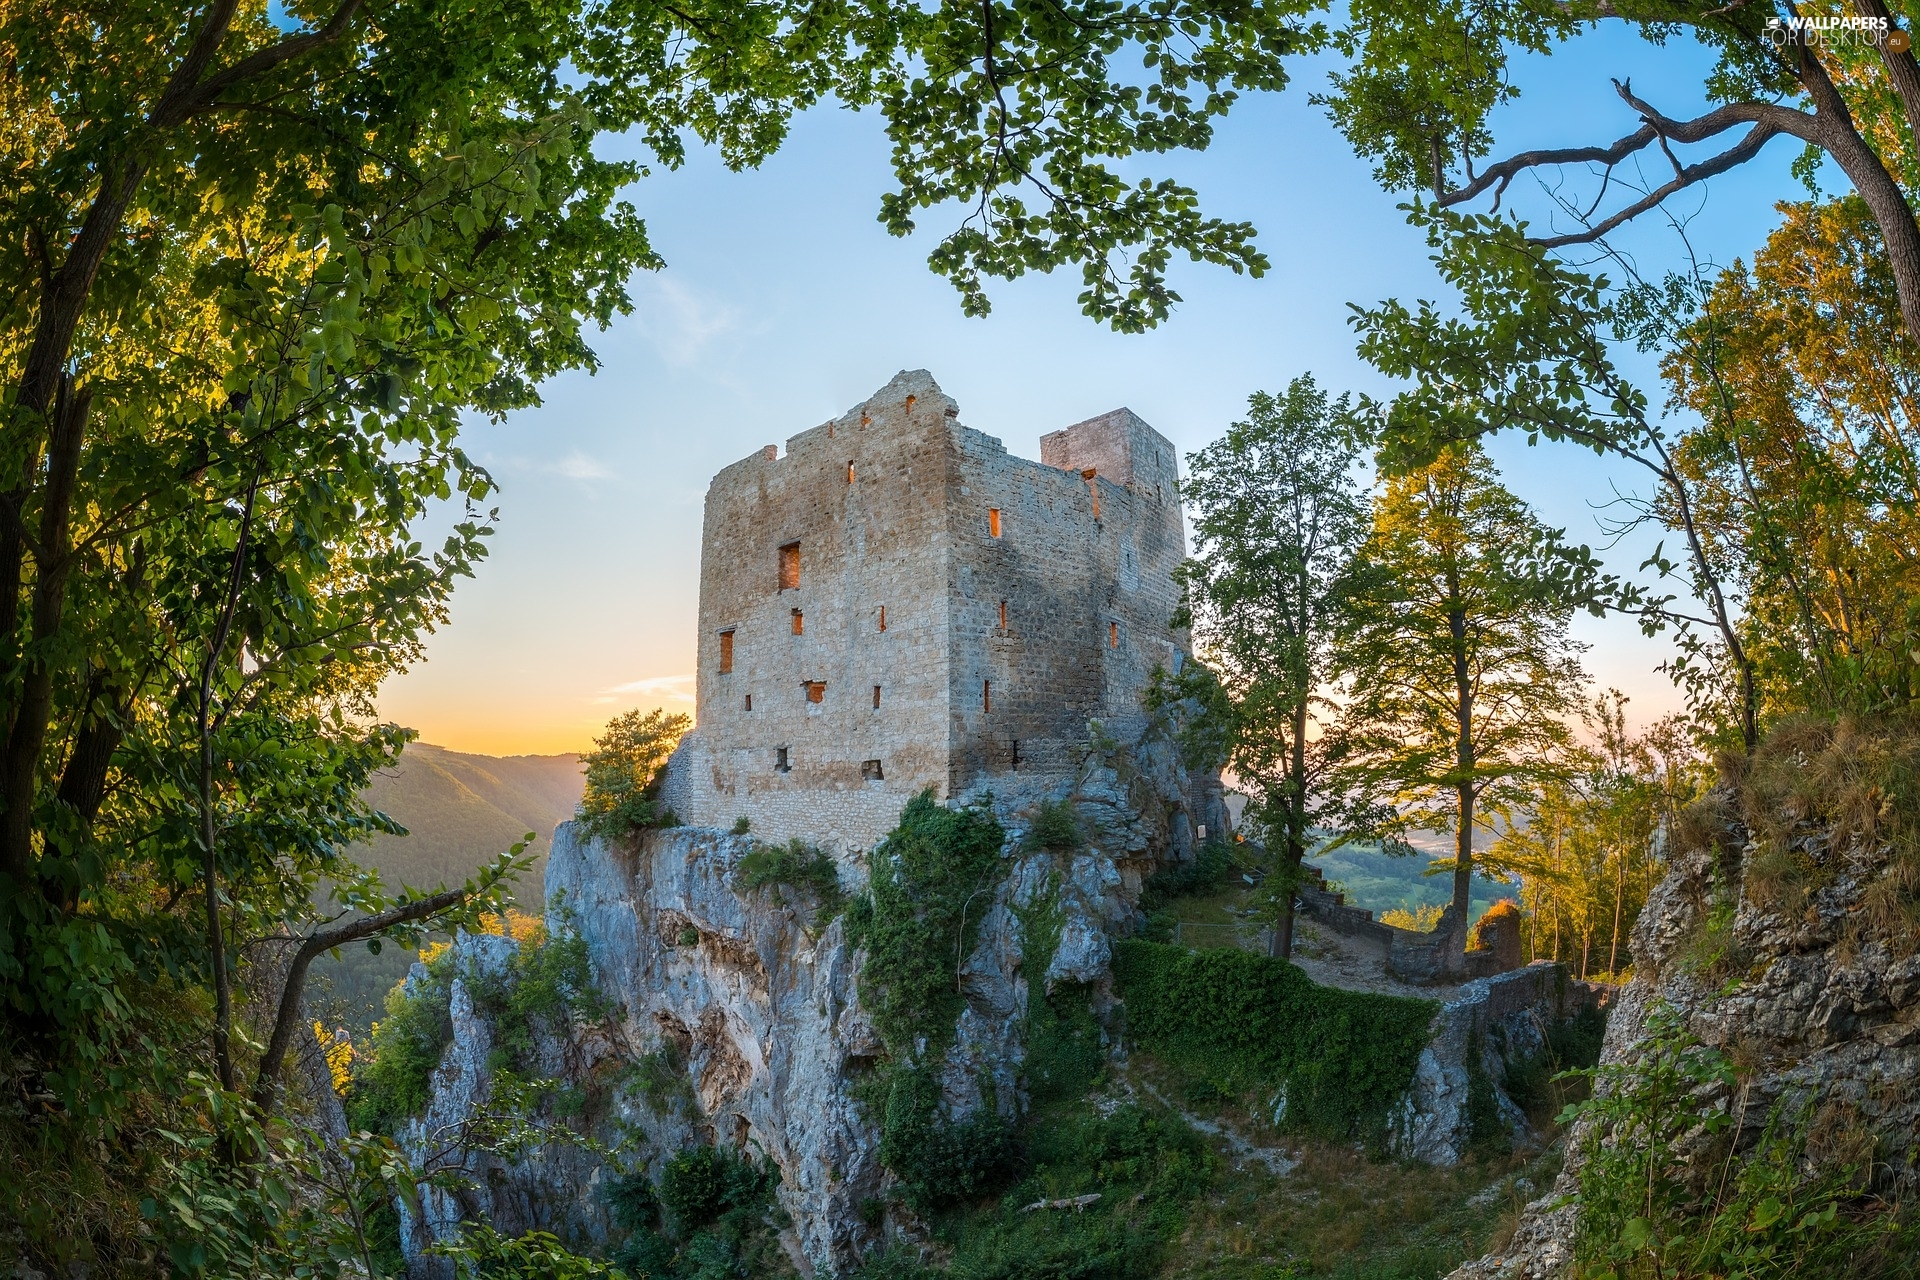 trees, viewes, Castle, ruins, Rocks